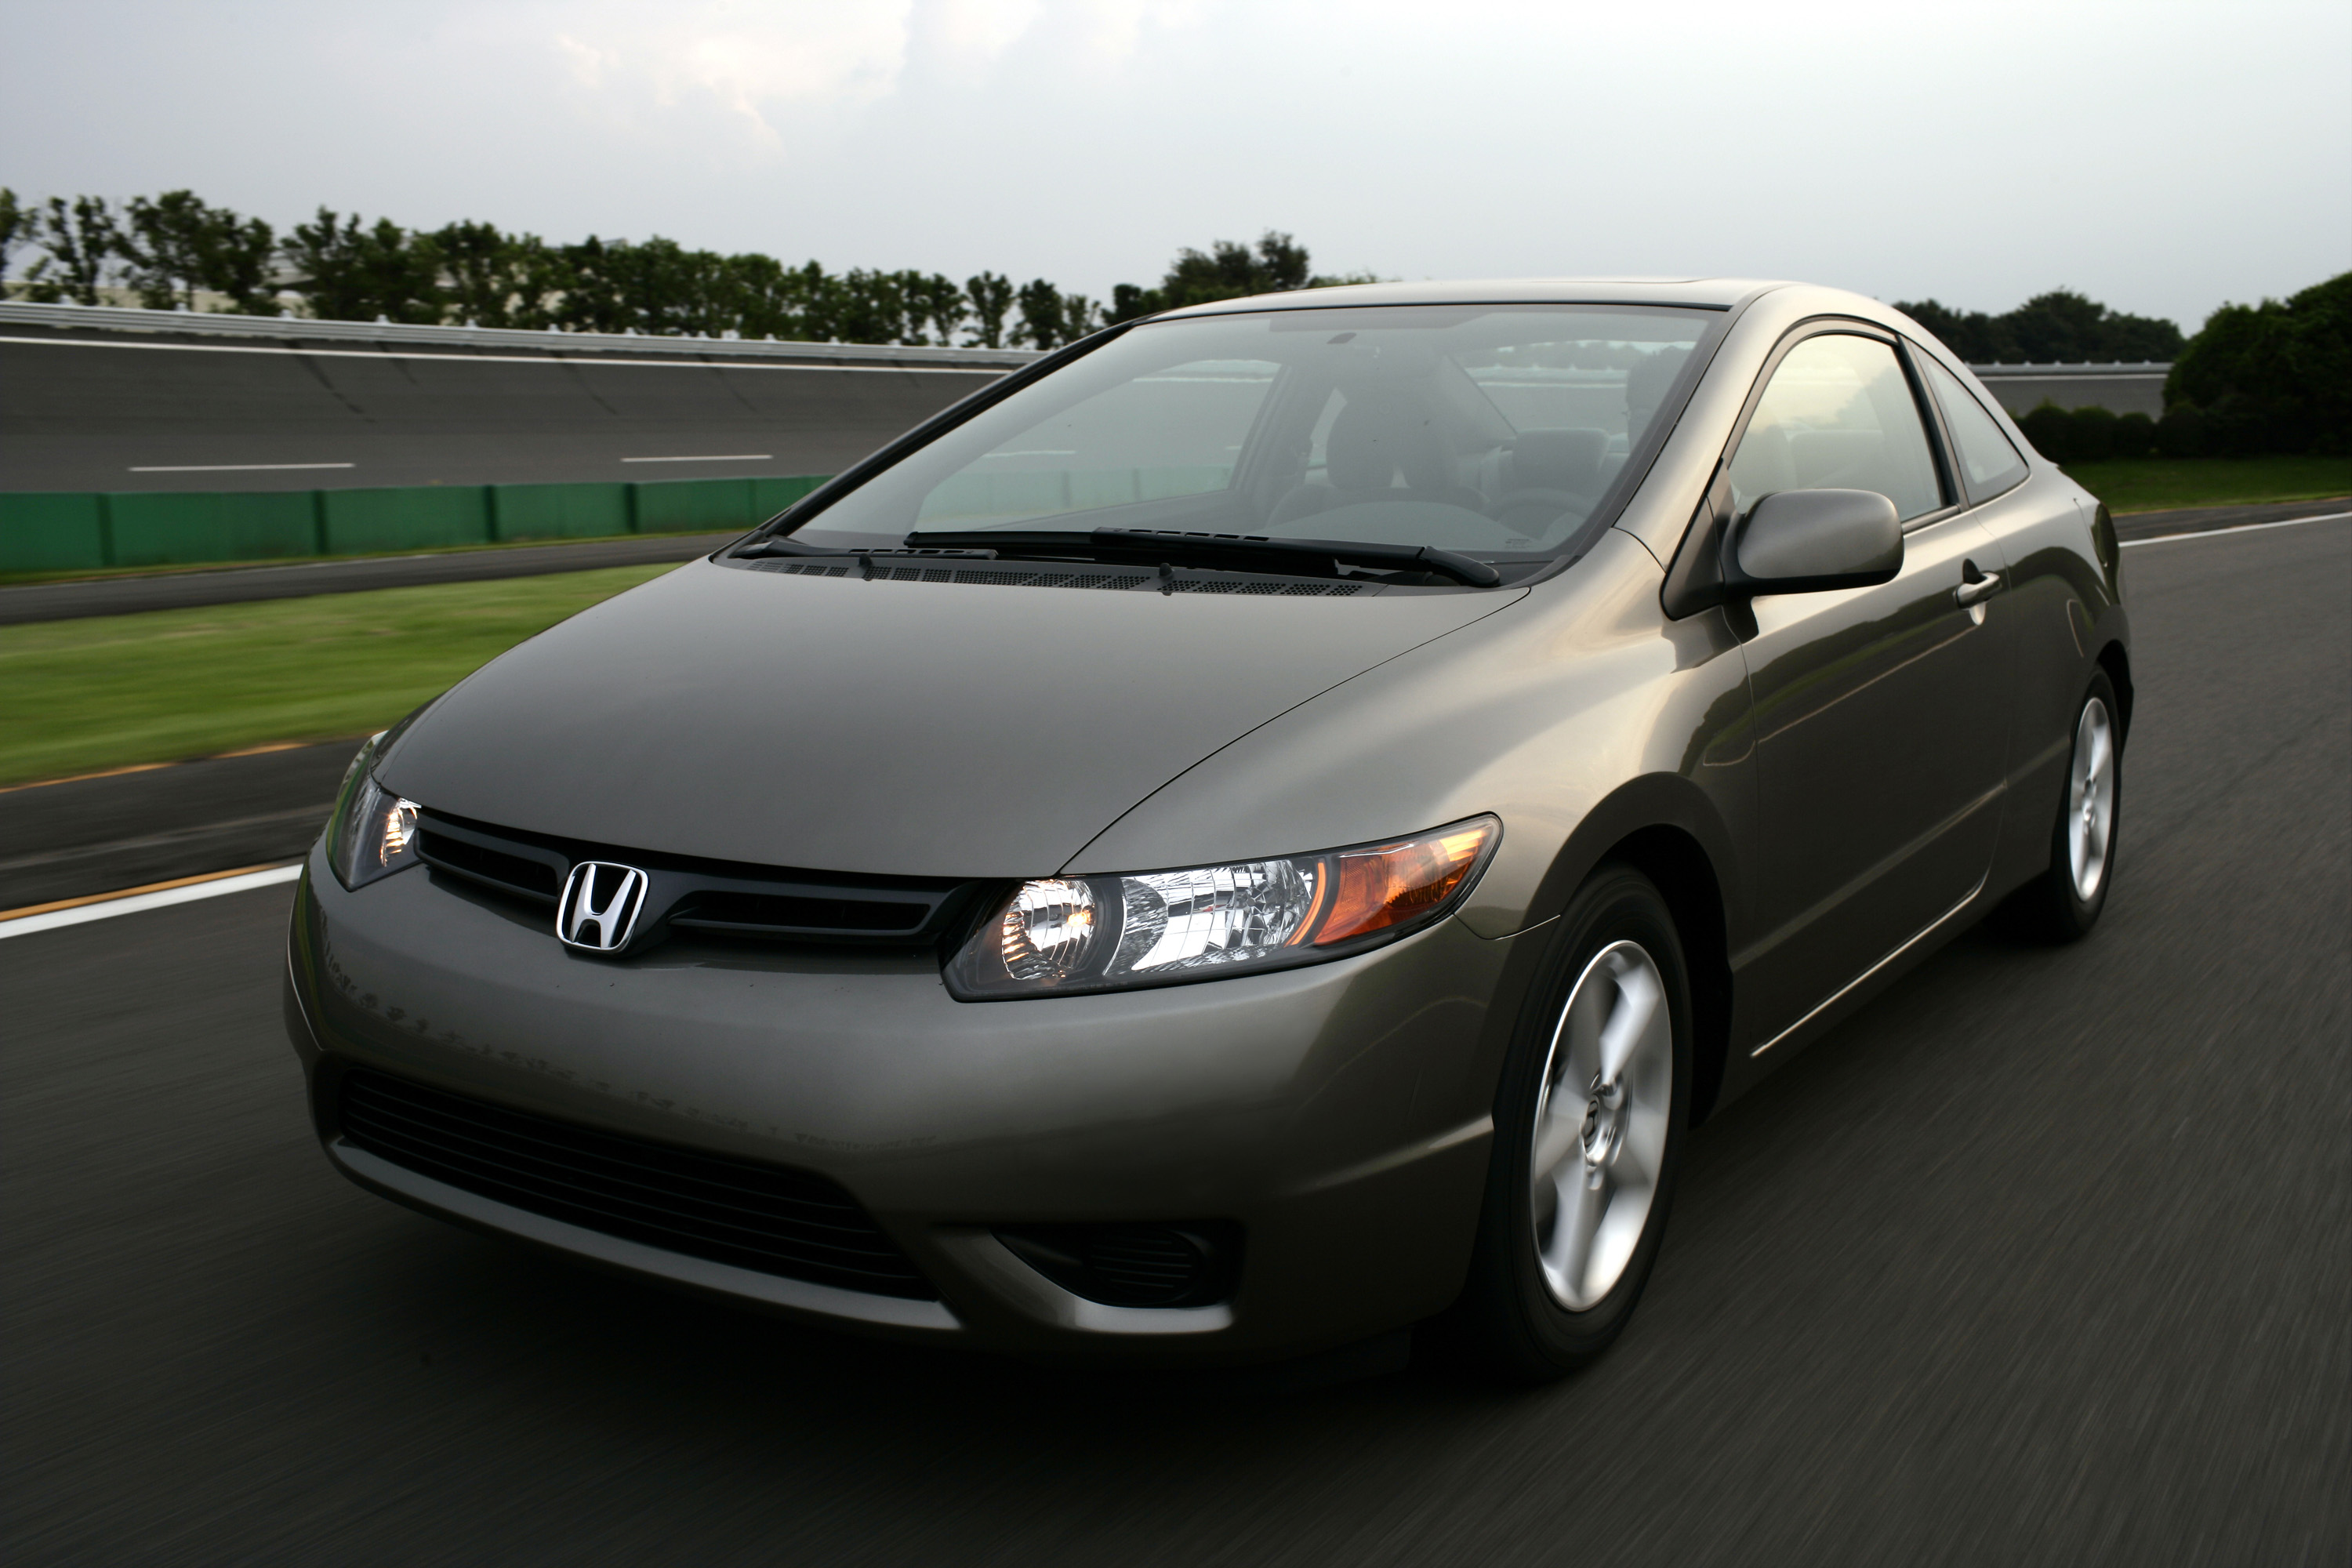 2006 Honda Civic Coupe | Top Speed. »